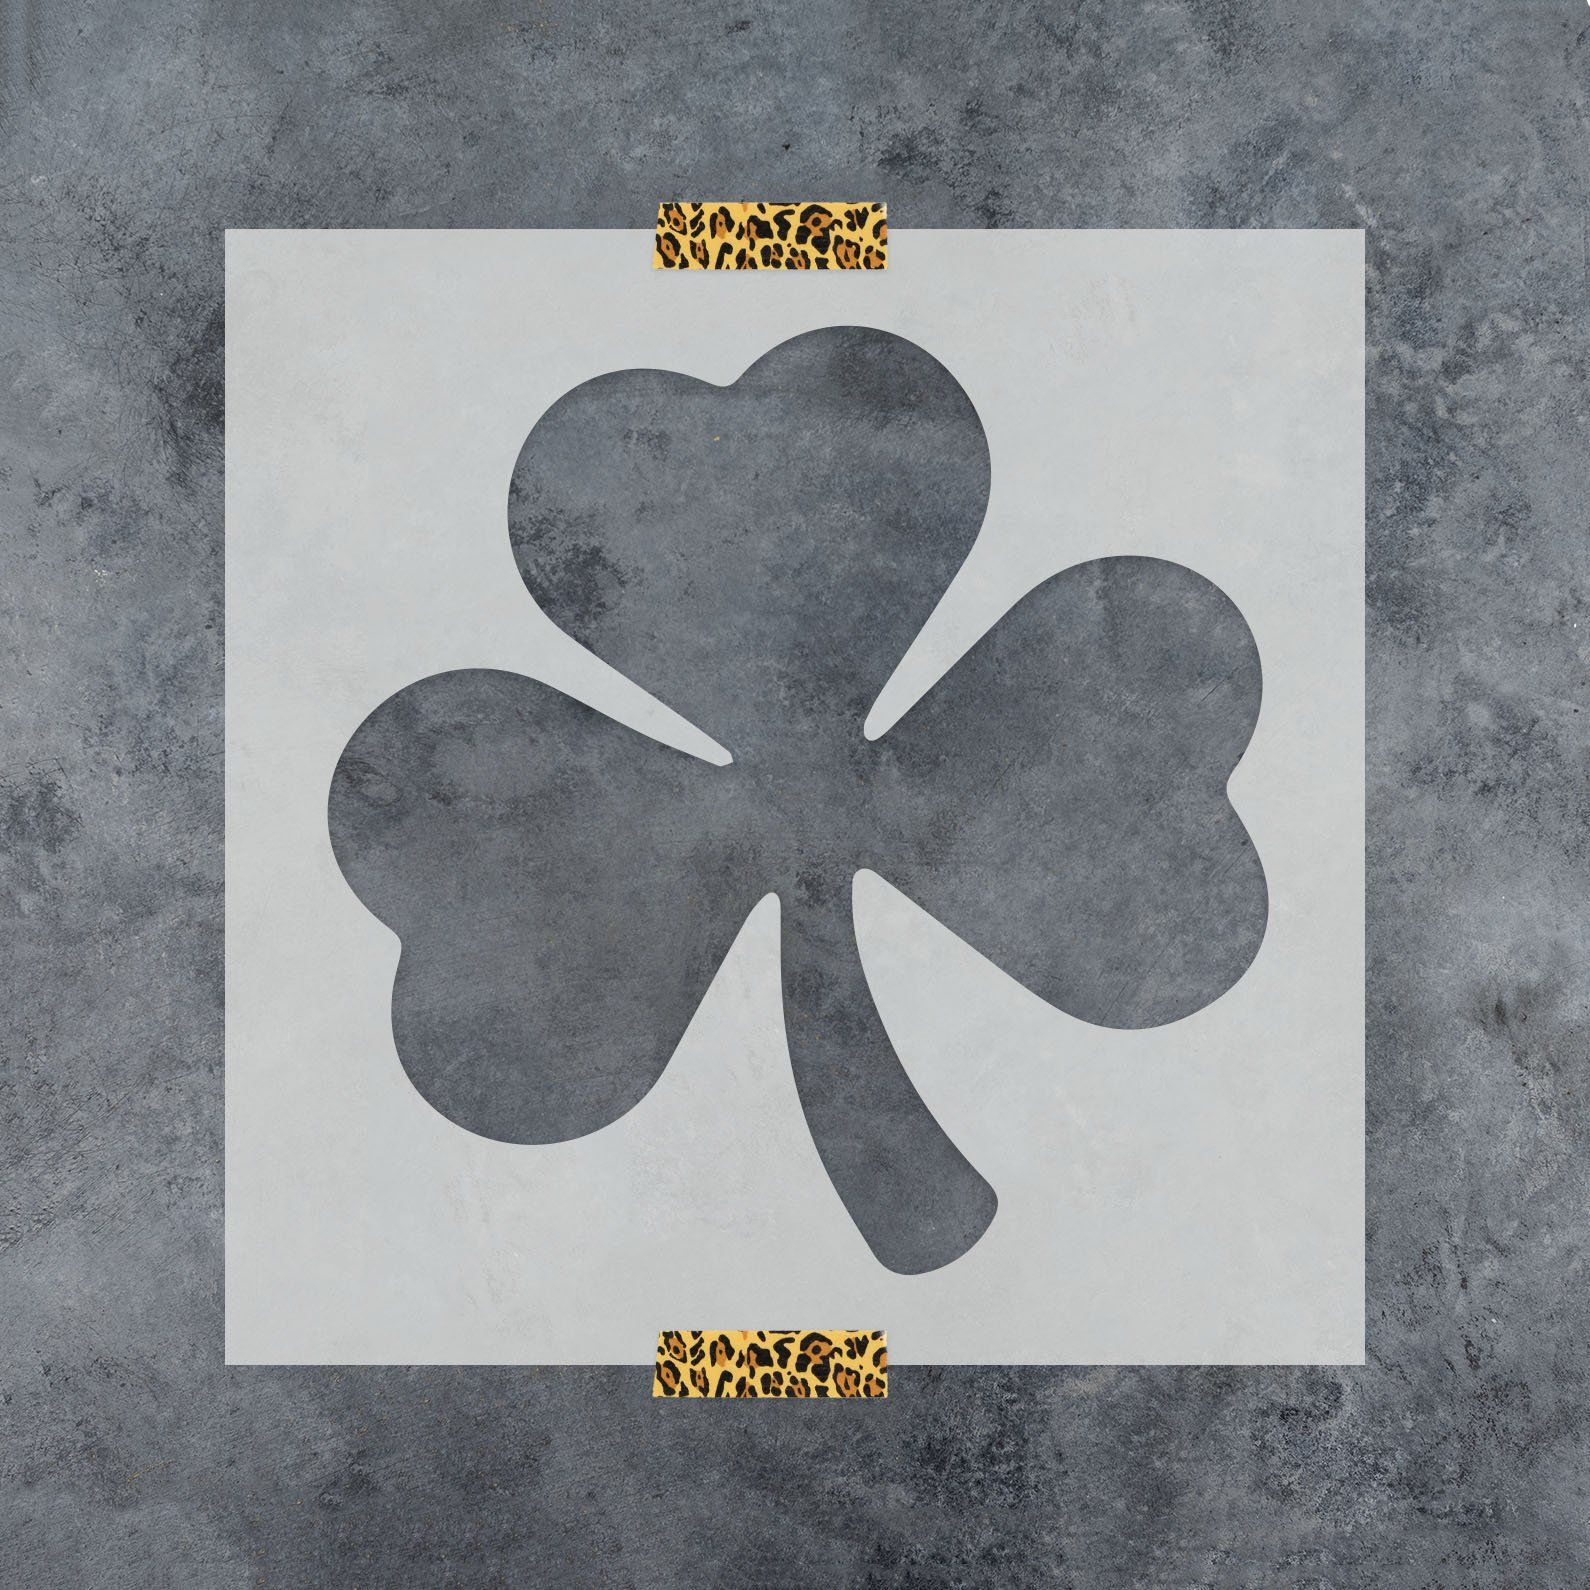 Reusable Stencils for Painting in Small /& Large Sizes Shamrock Stencil Template for Walls and Crafts